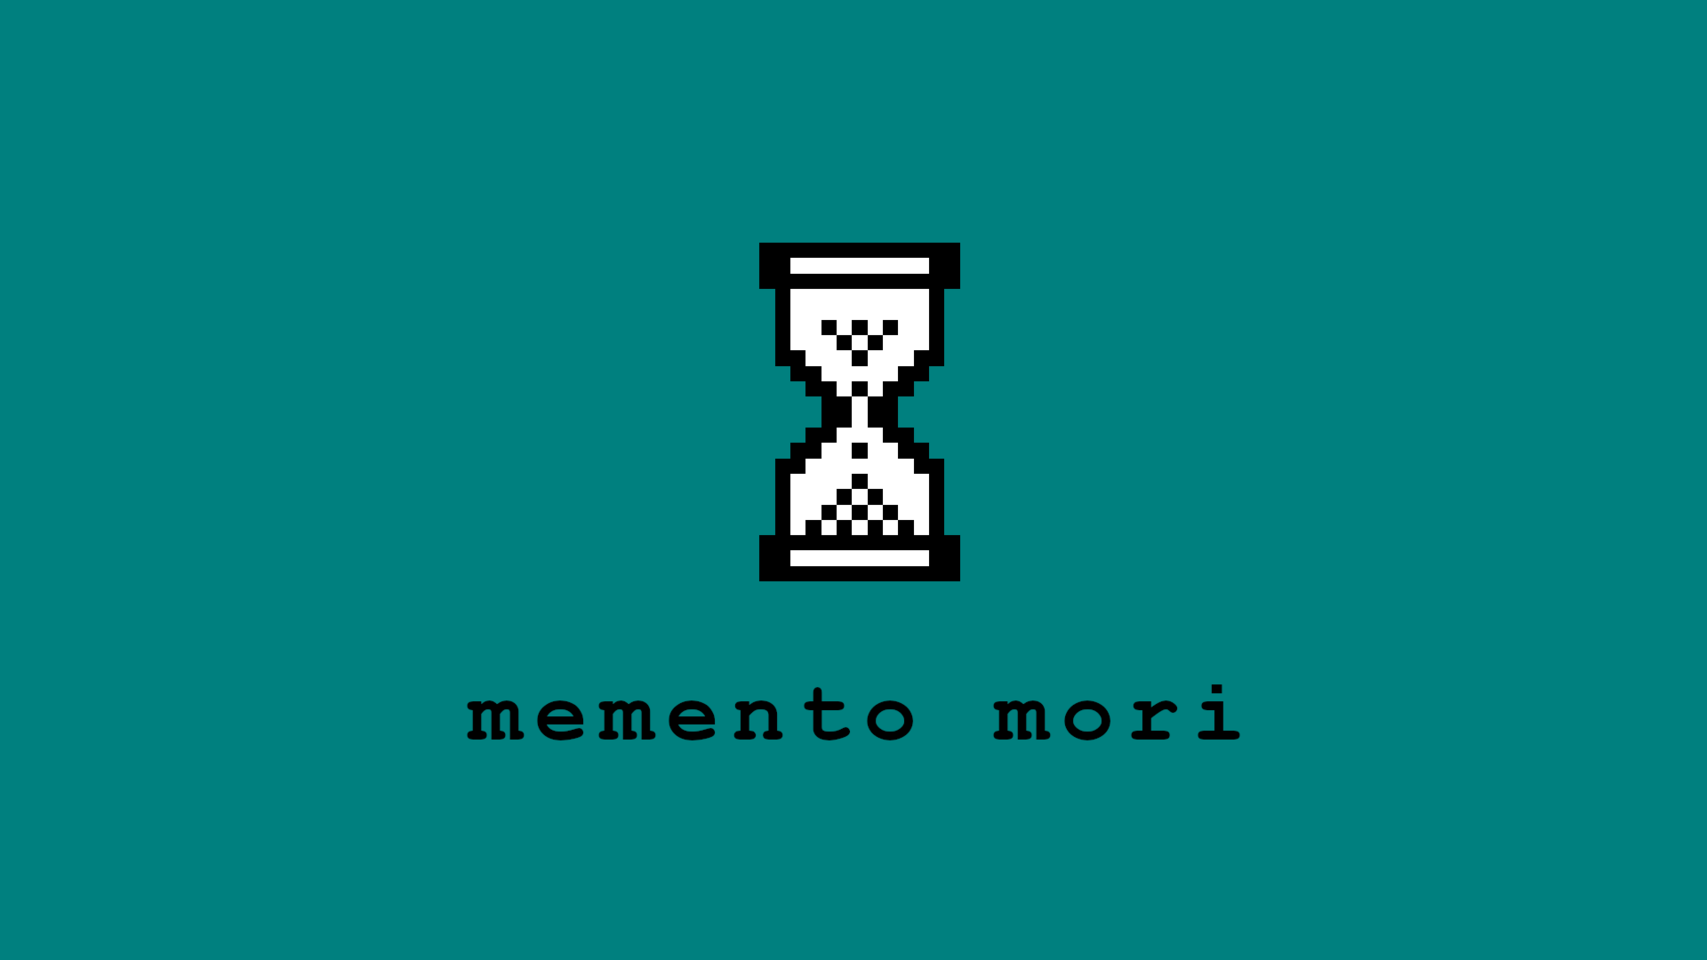 Rixx Memento Mori Or Remember That You Will Die